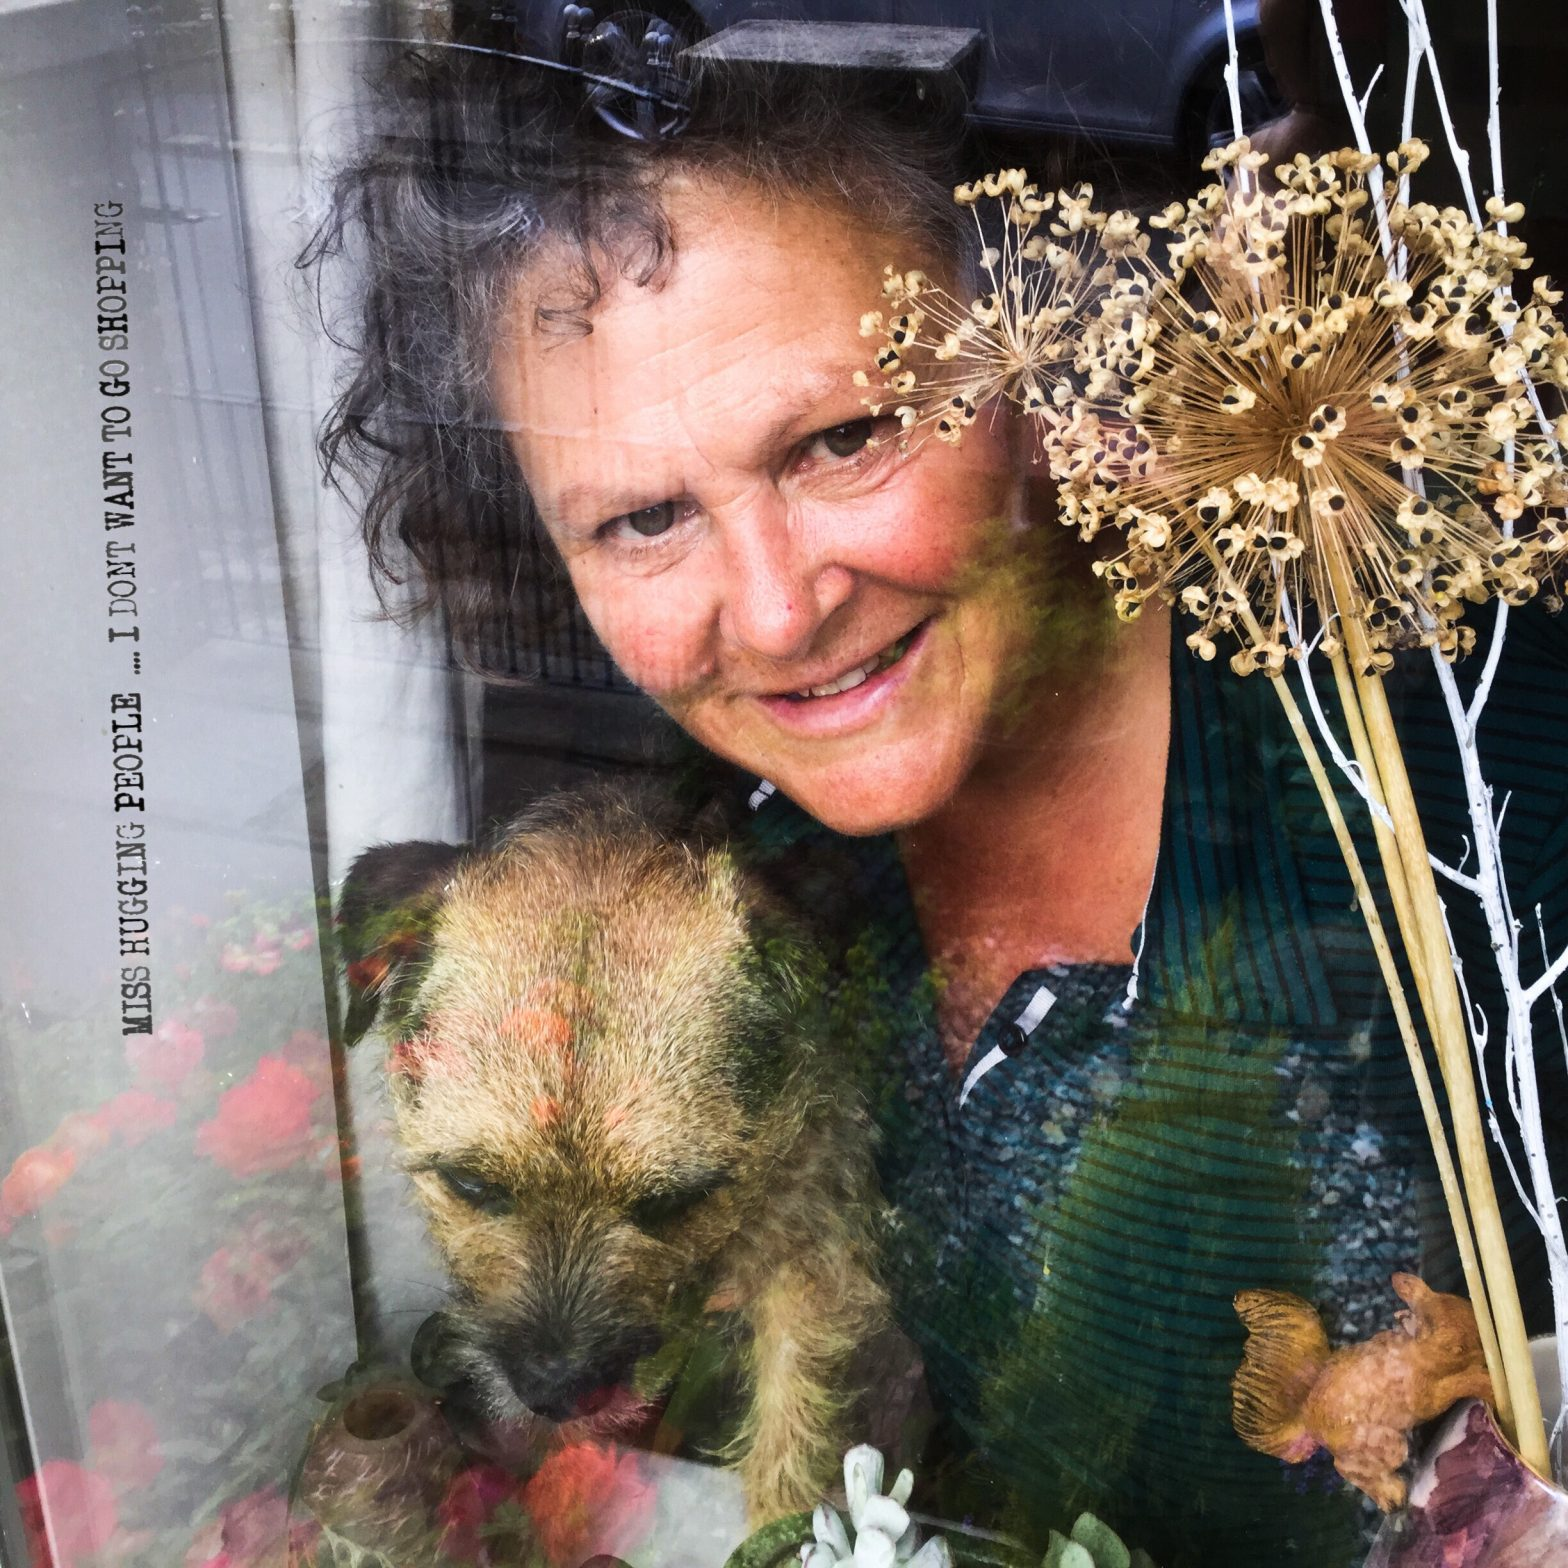 Person with dog behind a window